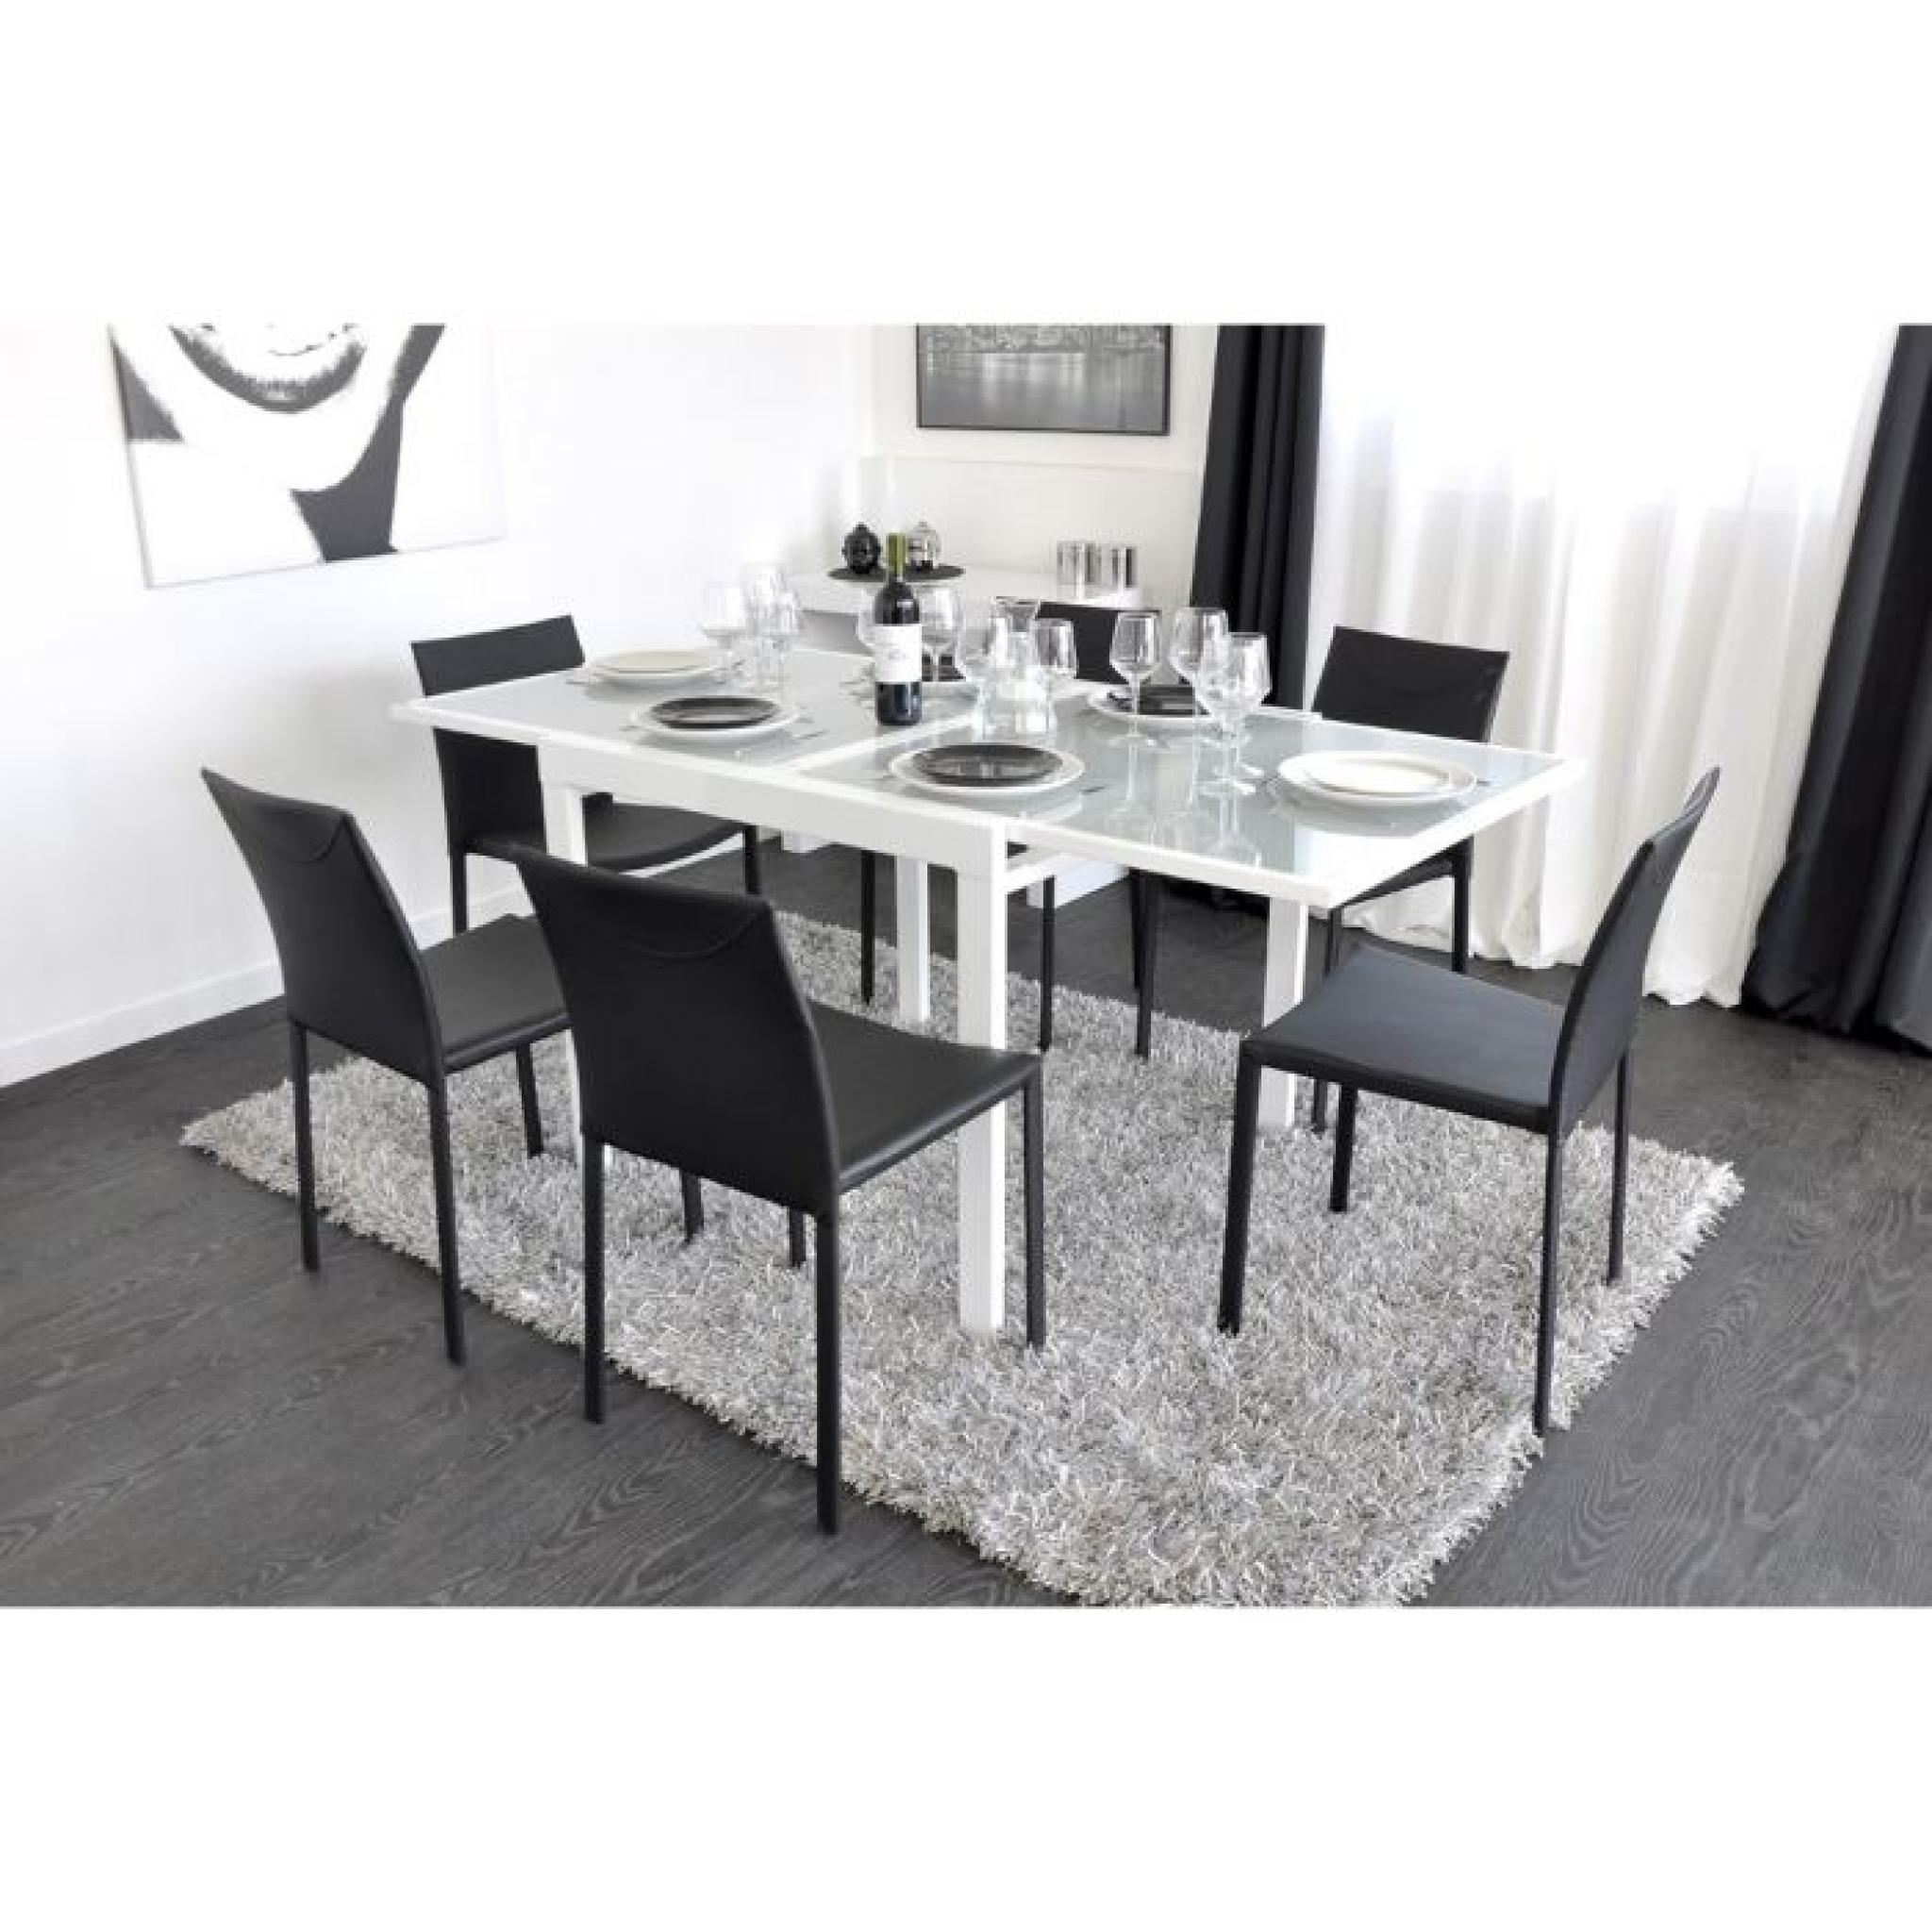 Extend table extensible blanche 90 180cm achat vente table salle a manger p - Table carree extensible blanche ...